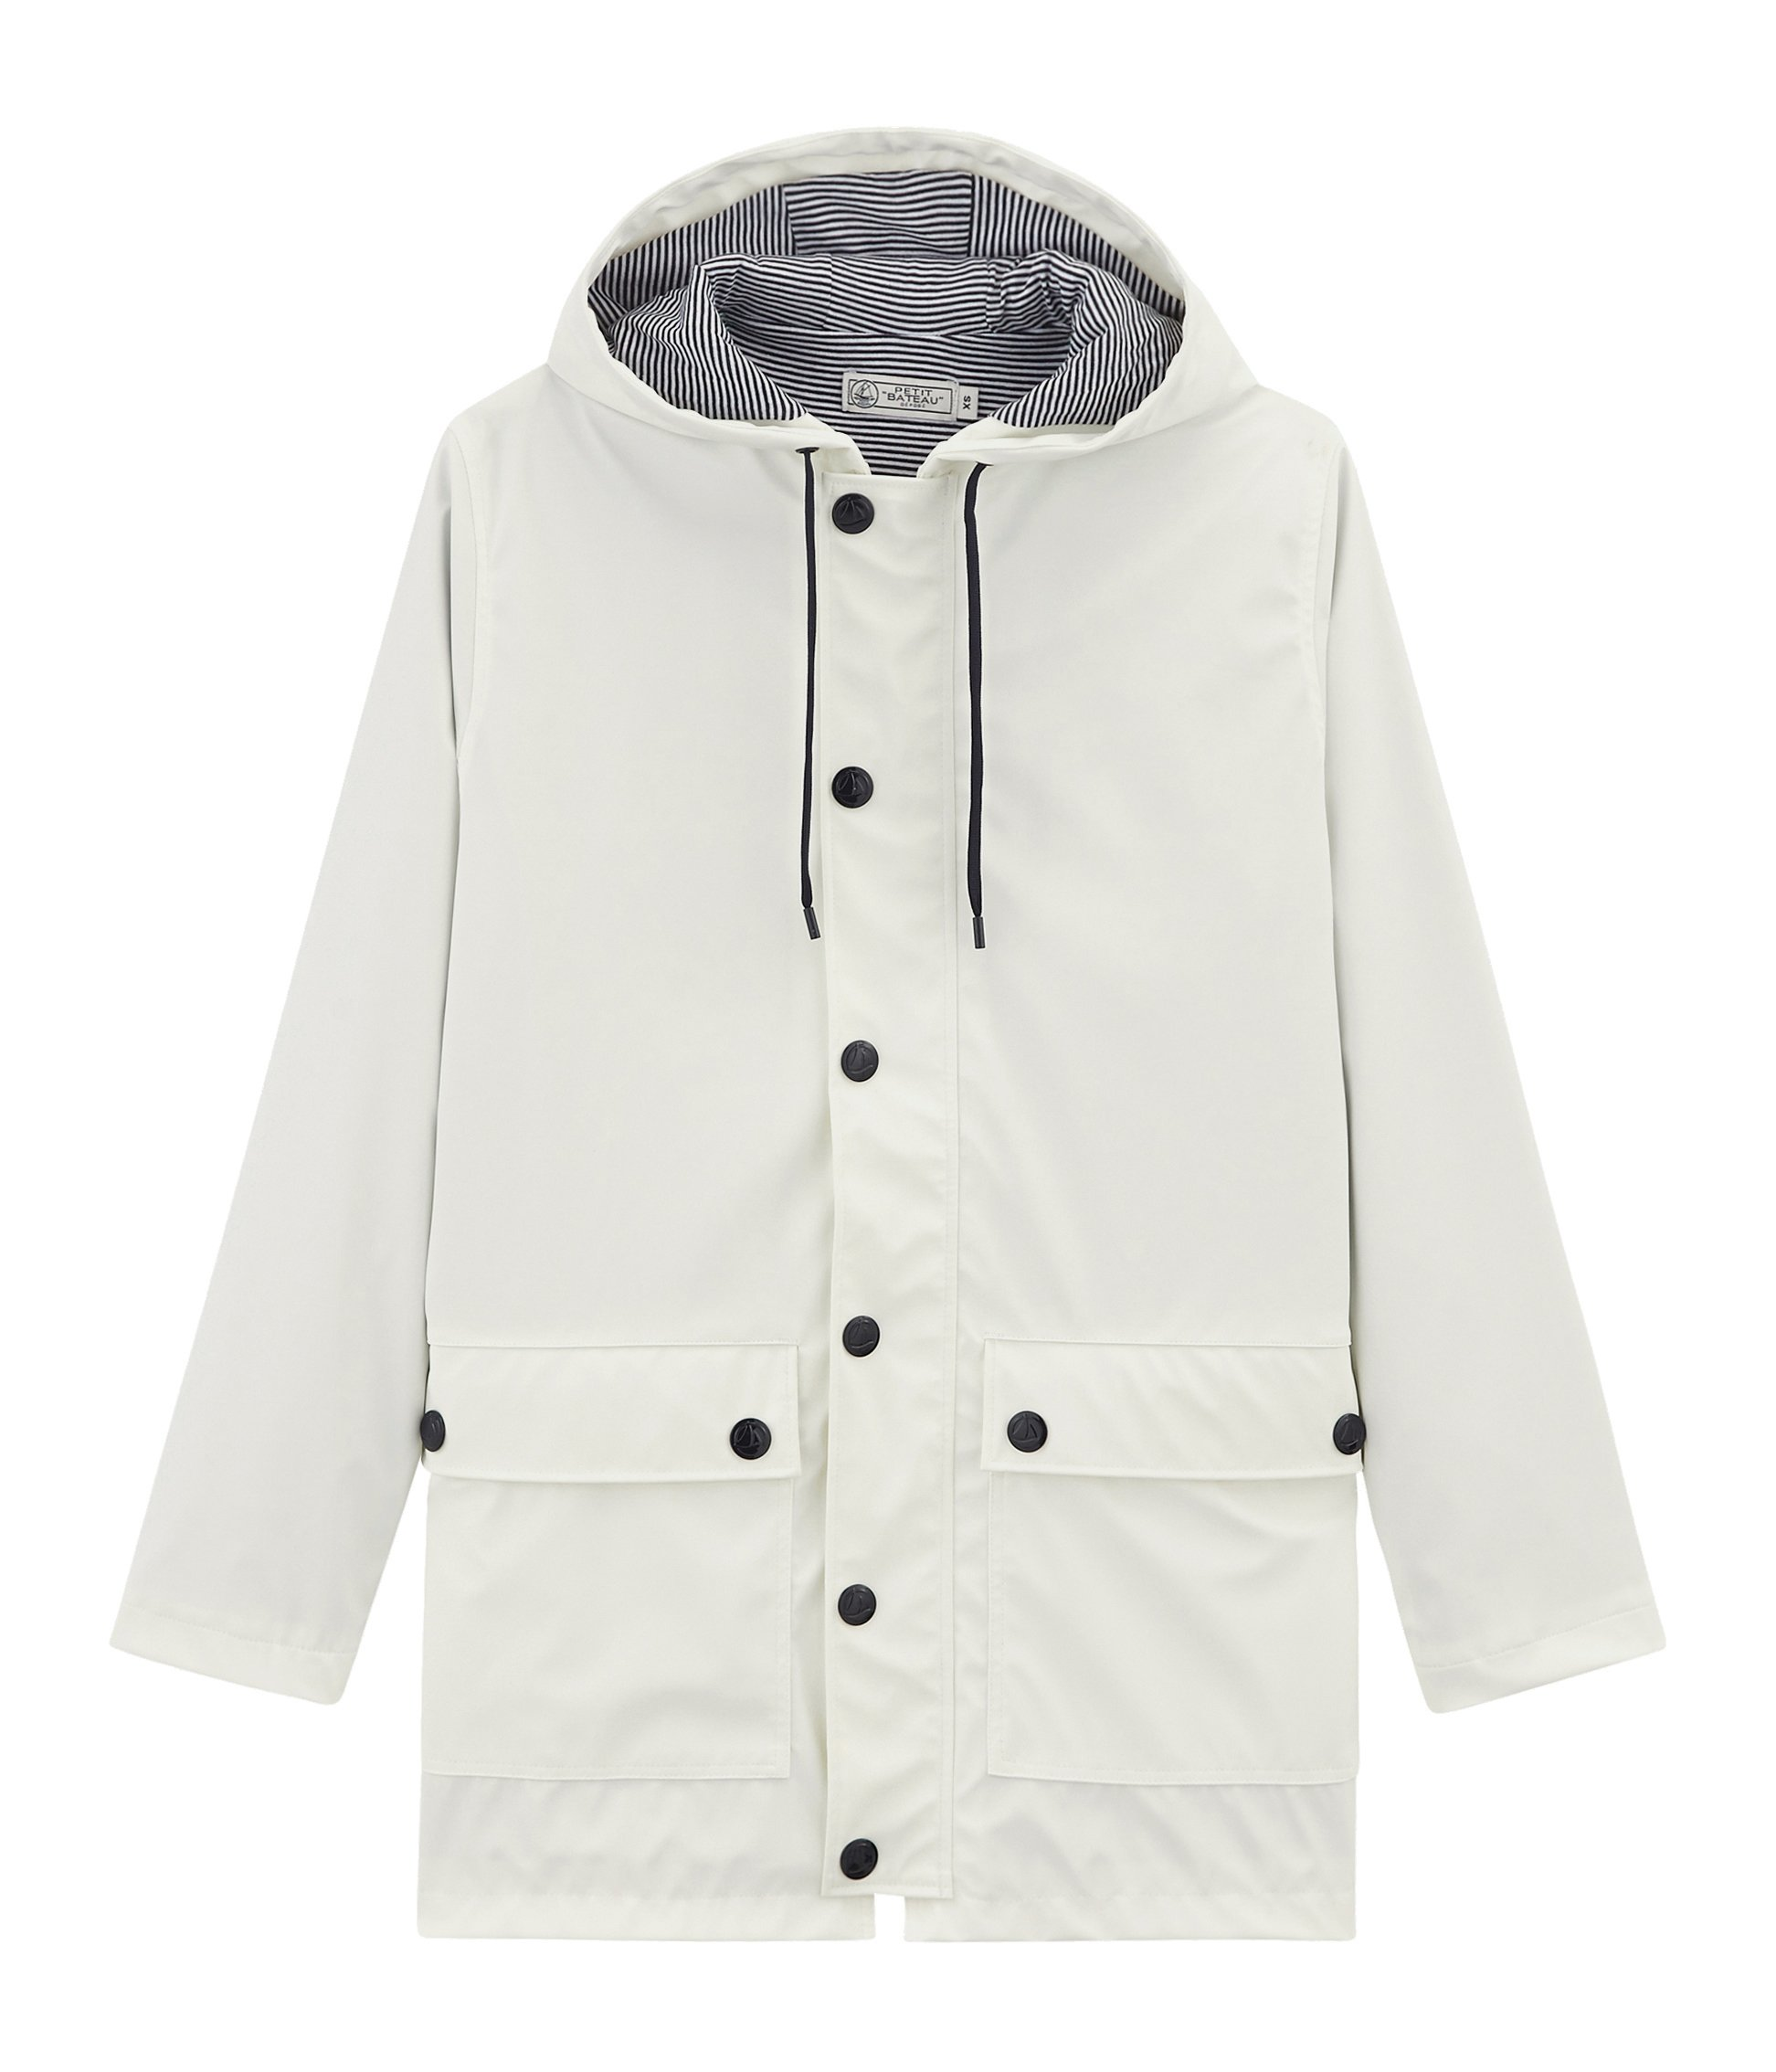 Unisex iconic raincoat